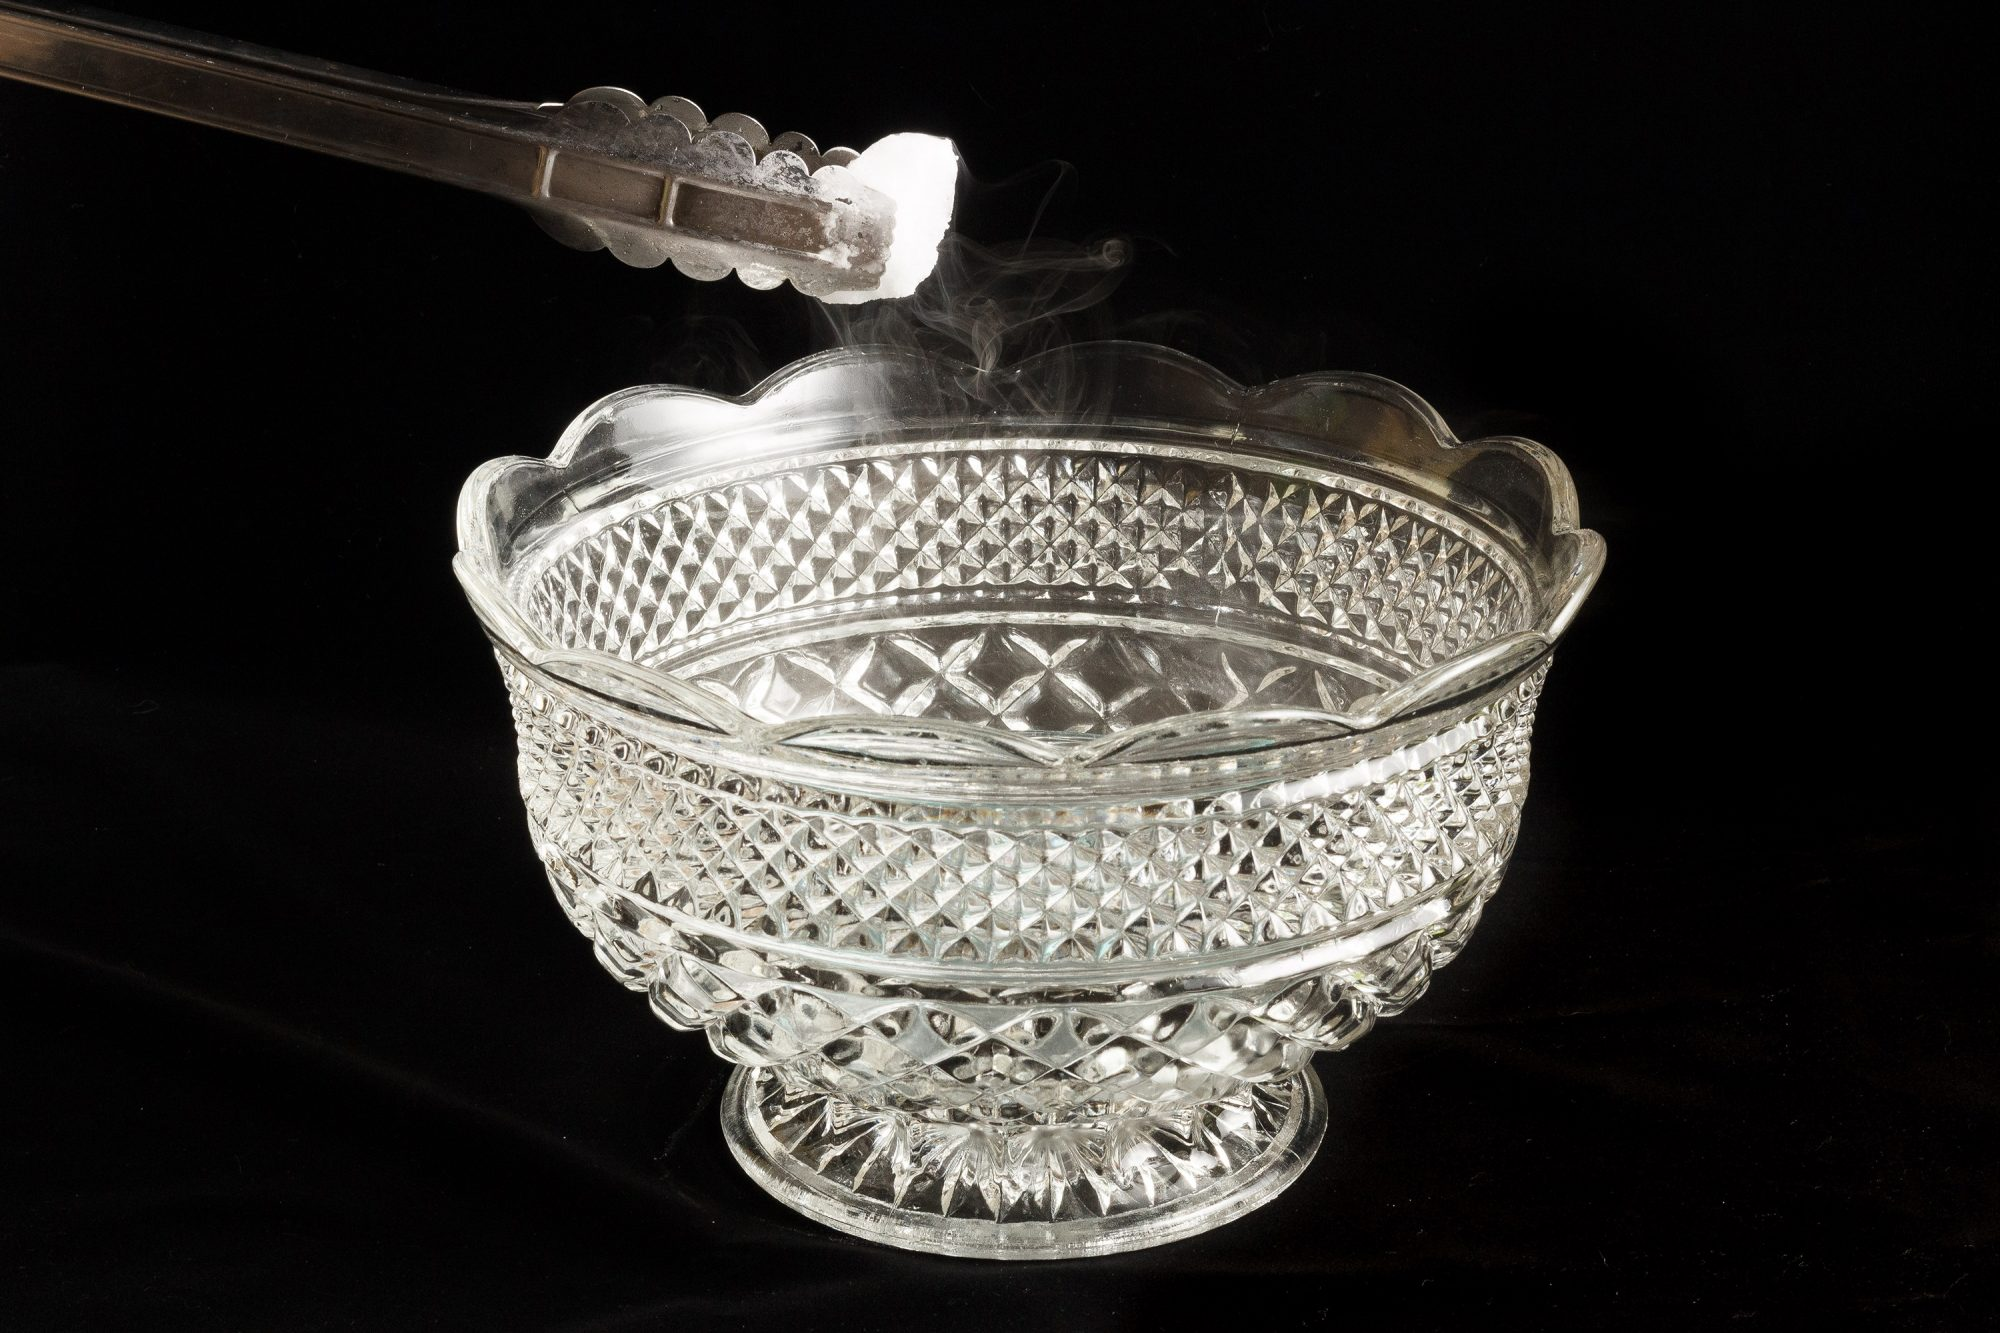 Using metal tongs to place dry ice in decorative punch bowl